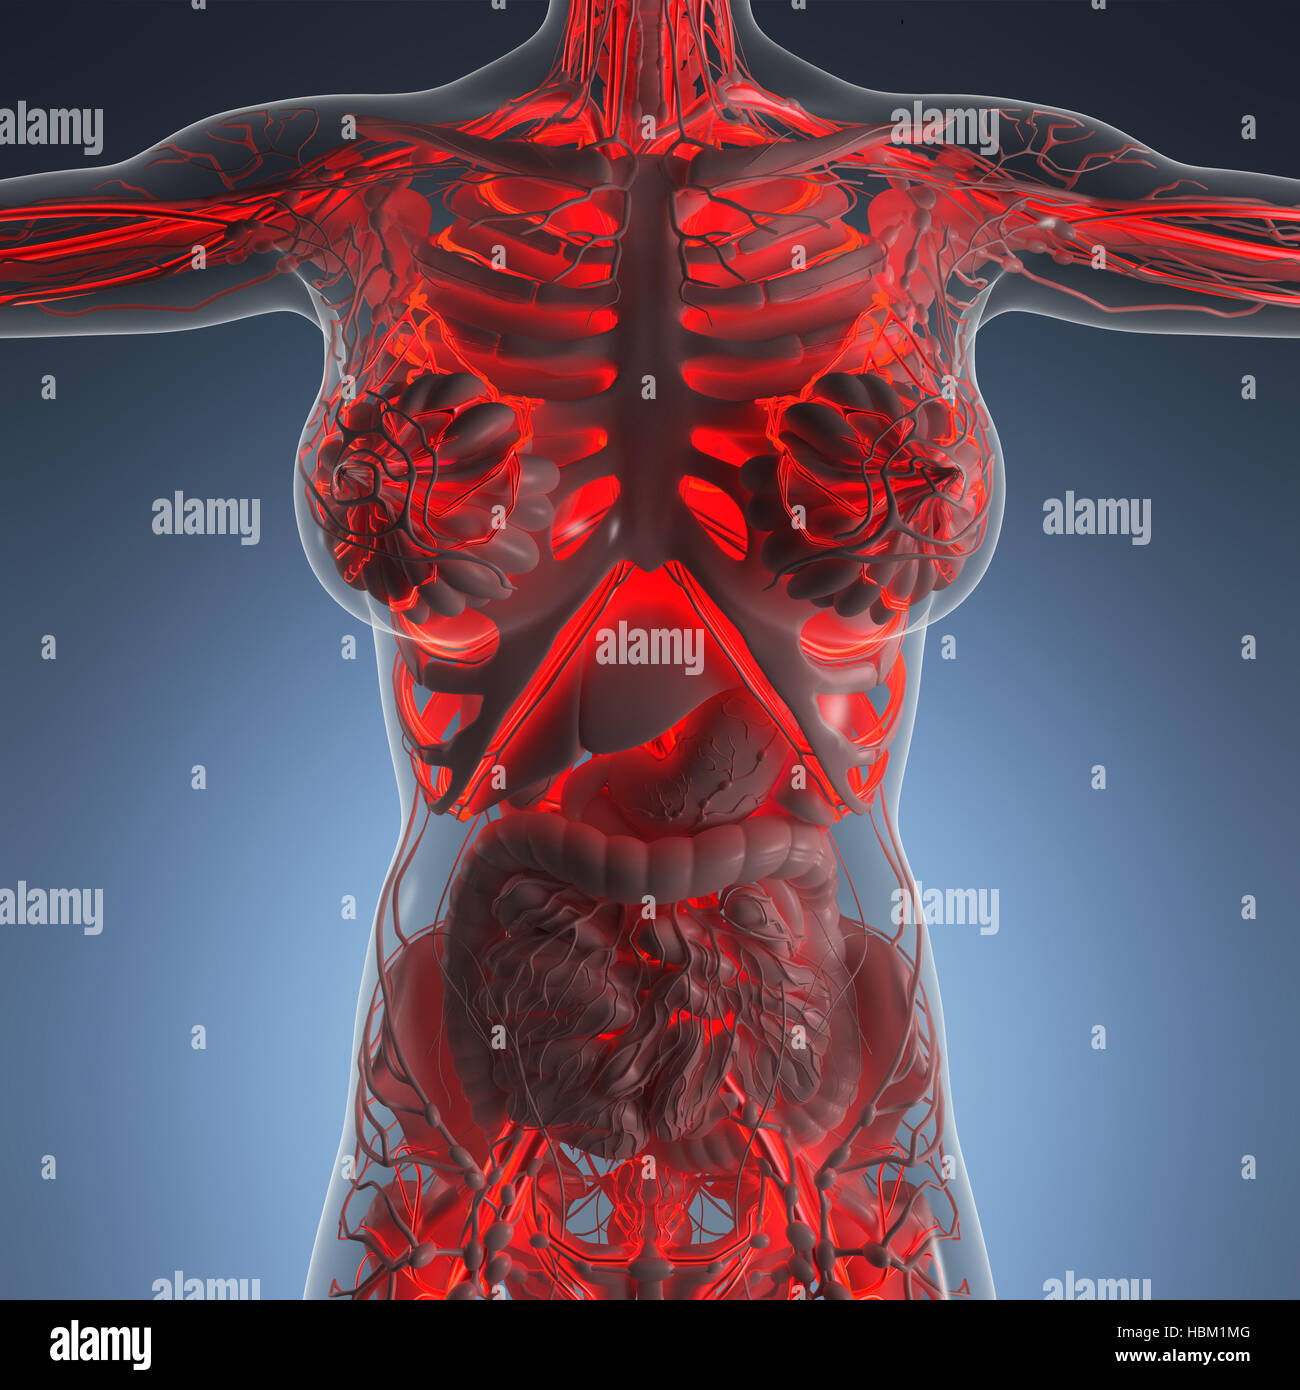 Science Anatomy Of Human Body In X Ray With Glow Blood Vessels Stock